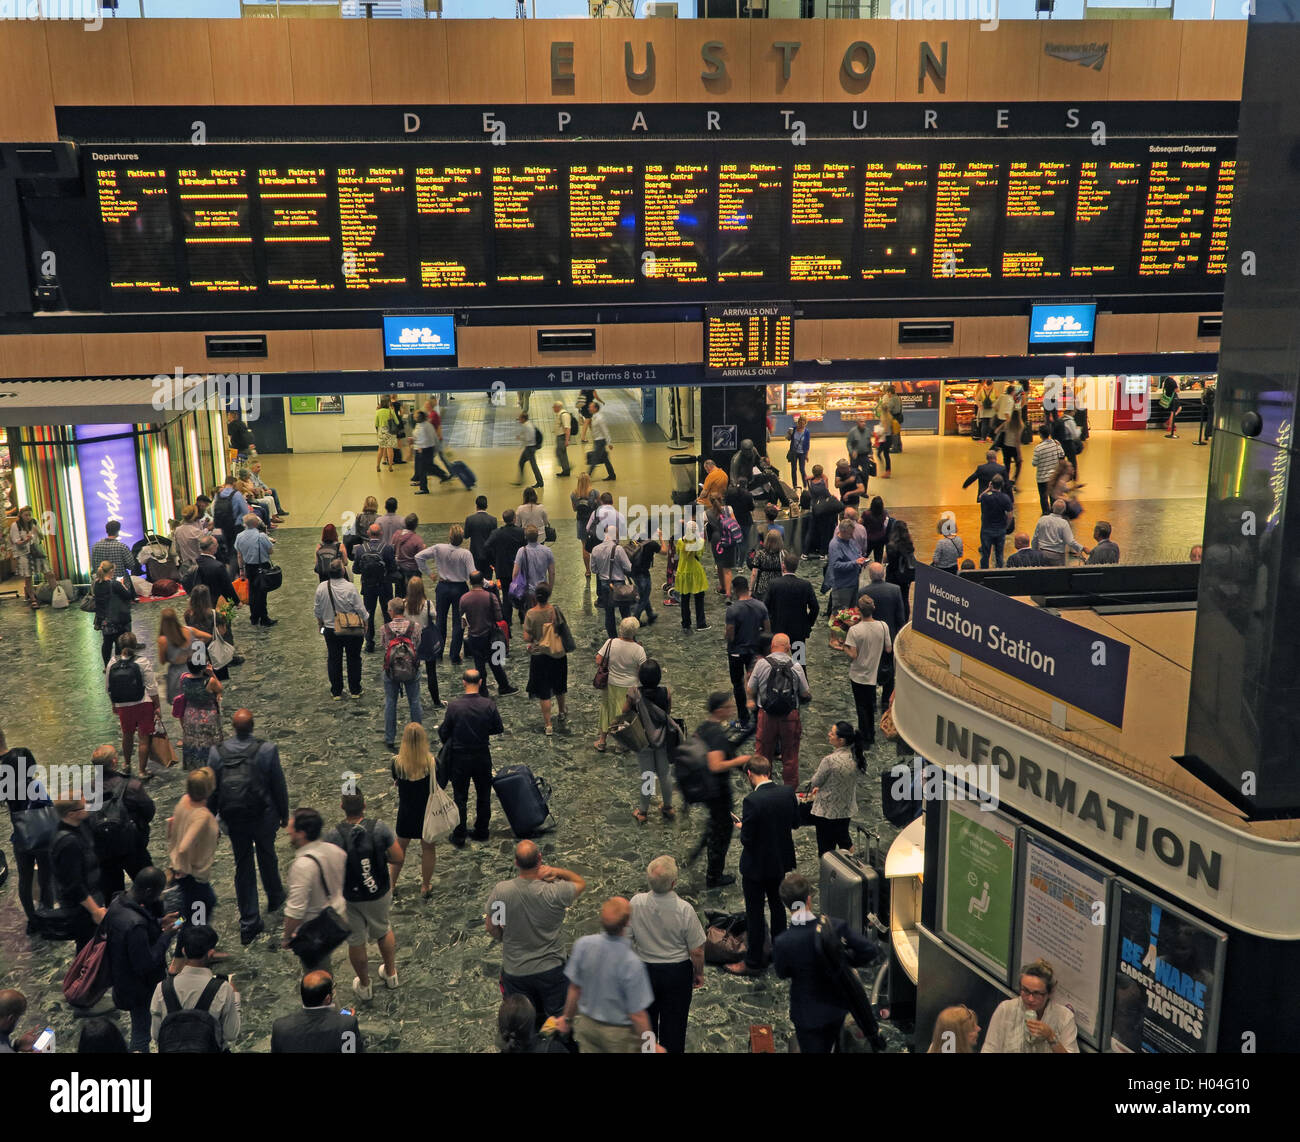 concourse,North,LDN,London,network,rail,BR,British,Rail,cost,costs,refurbishment,improved,improvement,poor,slow,expensive,infrastructure,tax,taxation,back,state,ownership,shareowner,shareowners,government,control,private,sector,owners,ownership,public,transport,British Rail,Britishrail,passenger,GoTonySmith,@HotpixUK,Tony,Smith,UK,GB,Great,Britain,United,Kingdom,English,British,England,busy,crowd,crowded,midland,LondonMidland,Overground,infrastructure,report,network,service,fragmentation,investment,subsidy,Buy Pictures of,Buy Images Of,Images of,Stock Images,Tony Smith,United Kingdom,Great Britain,British Isles,London Midland,rail infrastructure